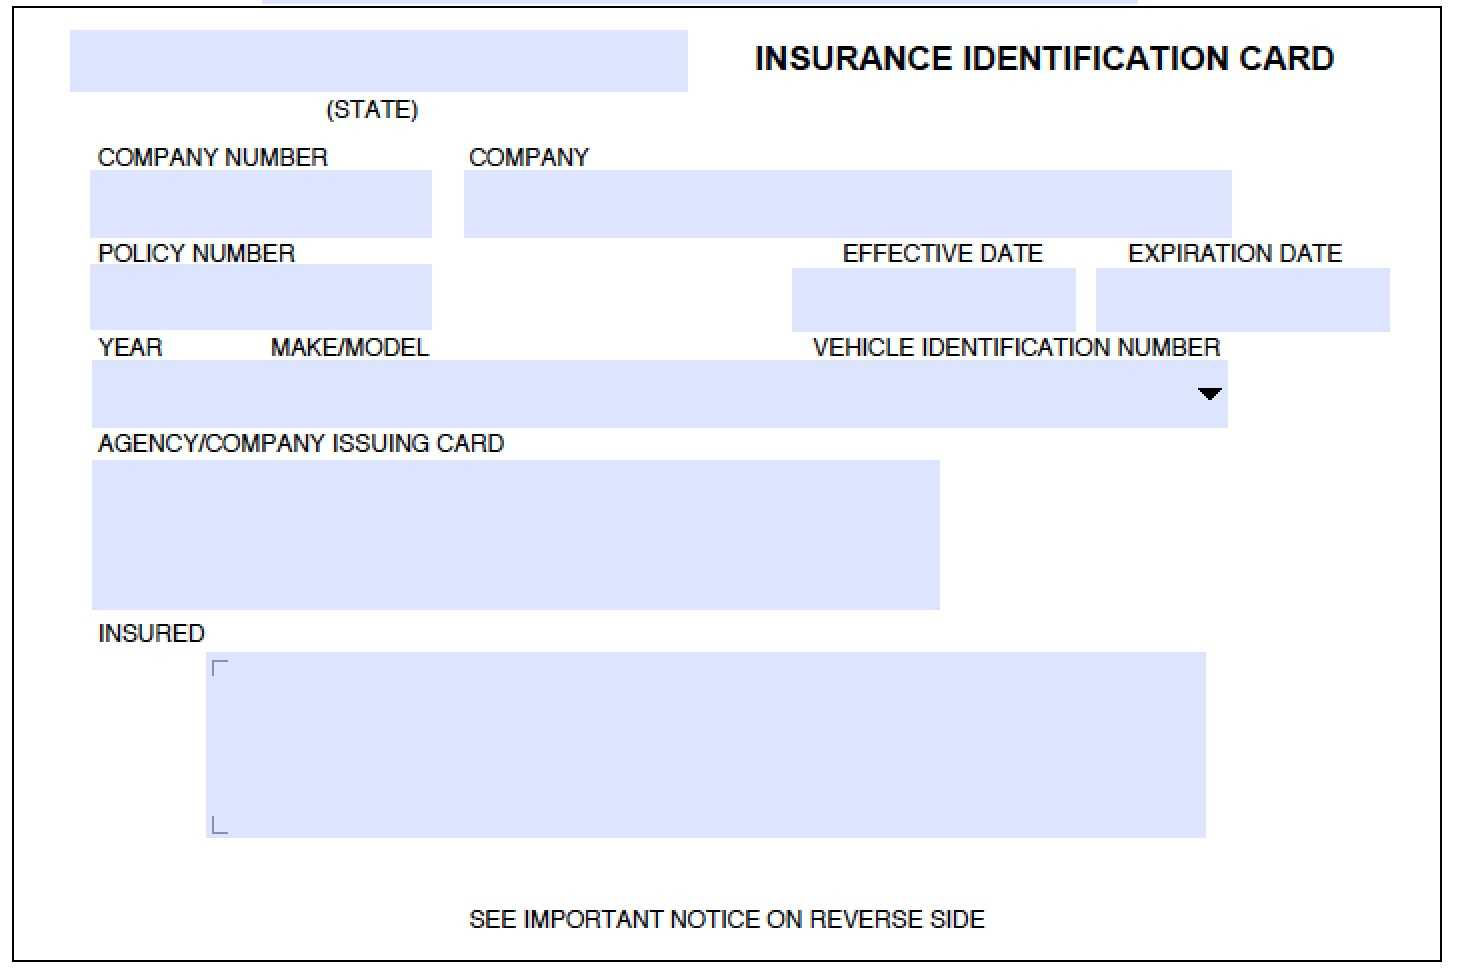 002 Fake Proof Of Insurance Templates Template Ideas Auto Id With Fake Proof Of Insurance Templates